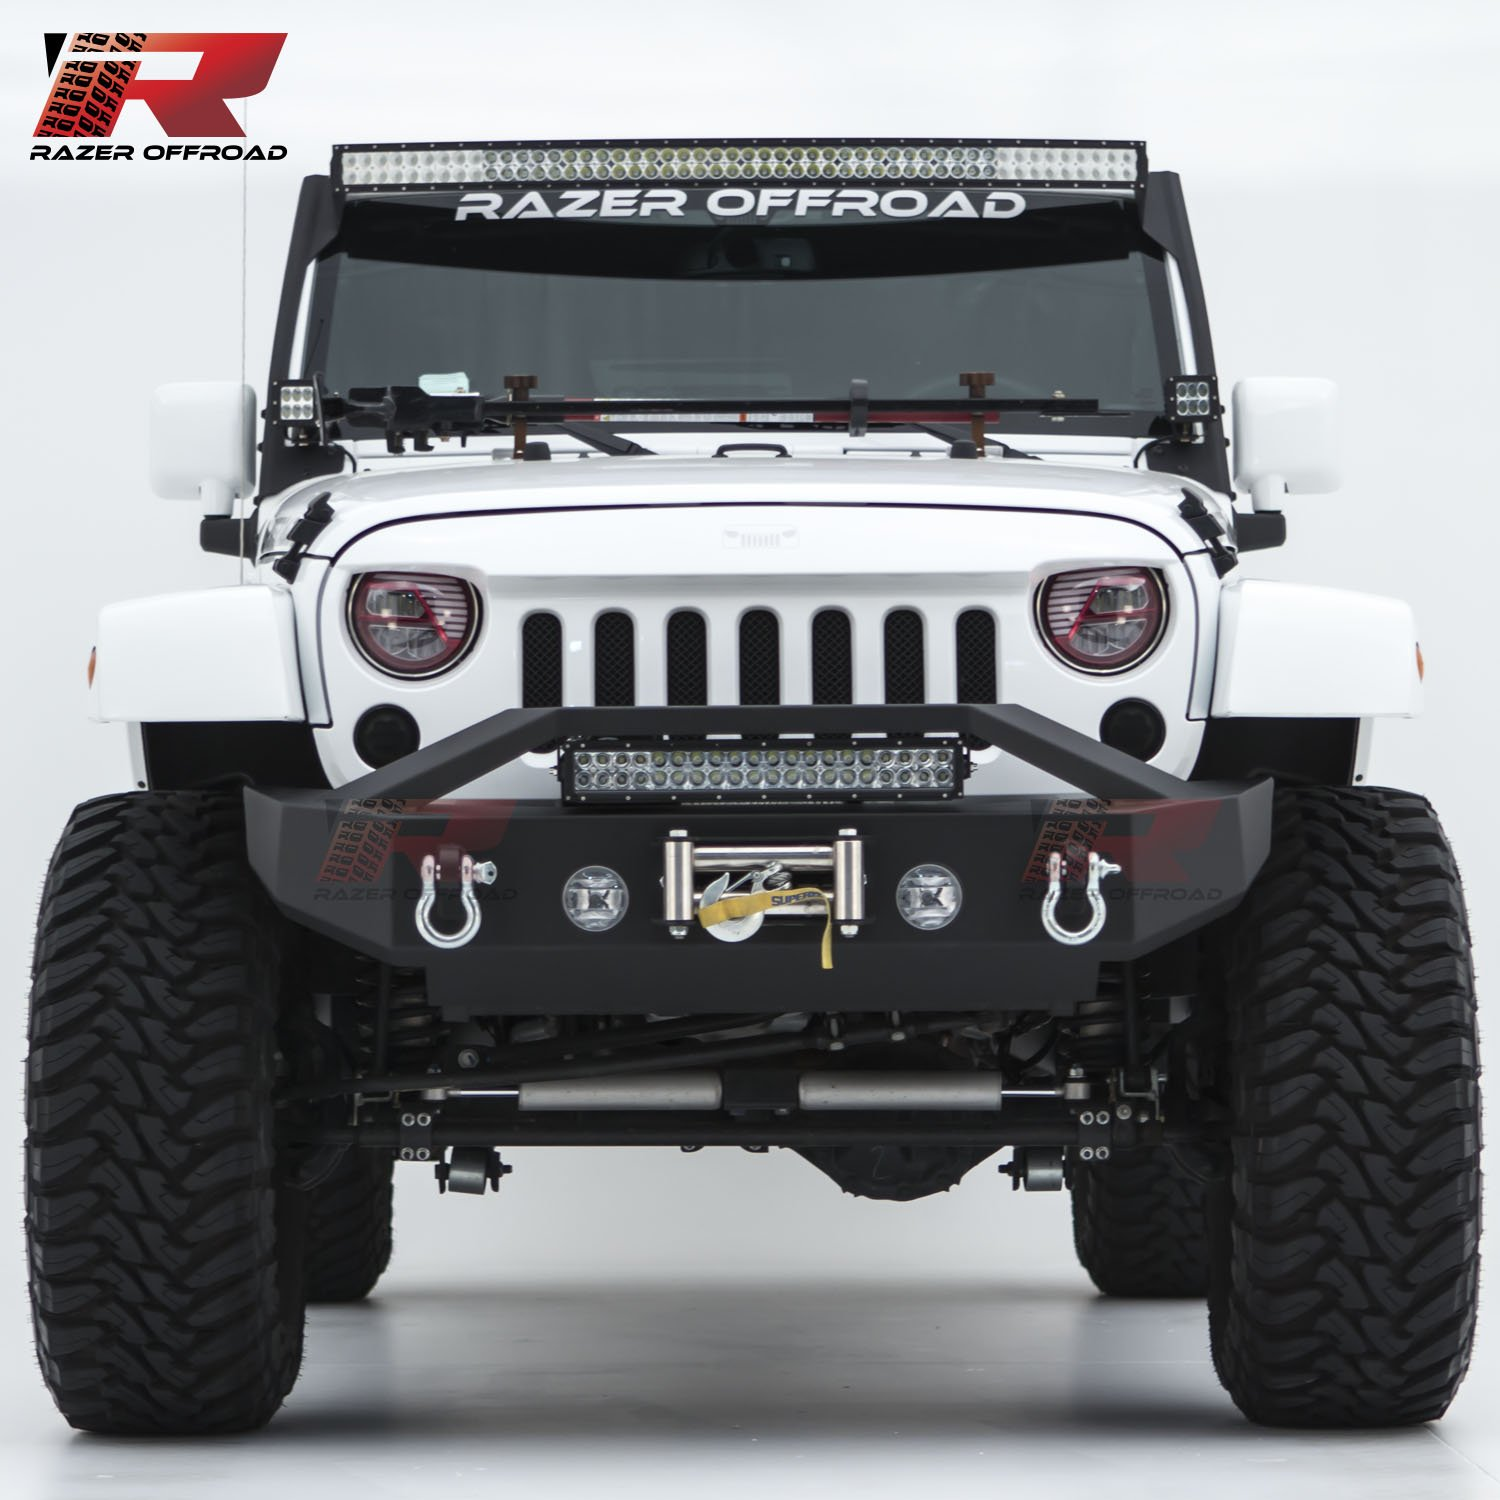 for 07-17 Jeep Wrangler JK Black 2x D-Ring and 21 LED Light bar /& Winch Mount Plate Razer Auto Black Textured Rock Crawler Stubby Front Bumper with OE Fog Light Hole